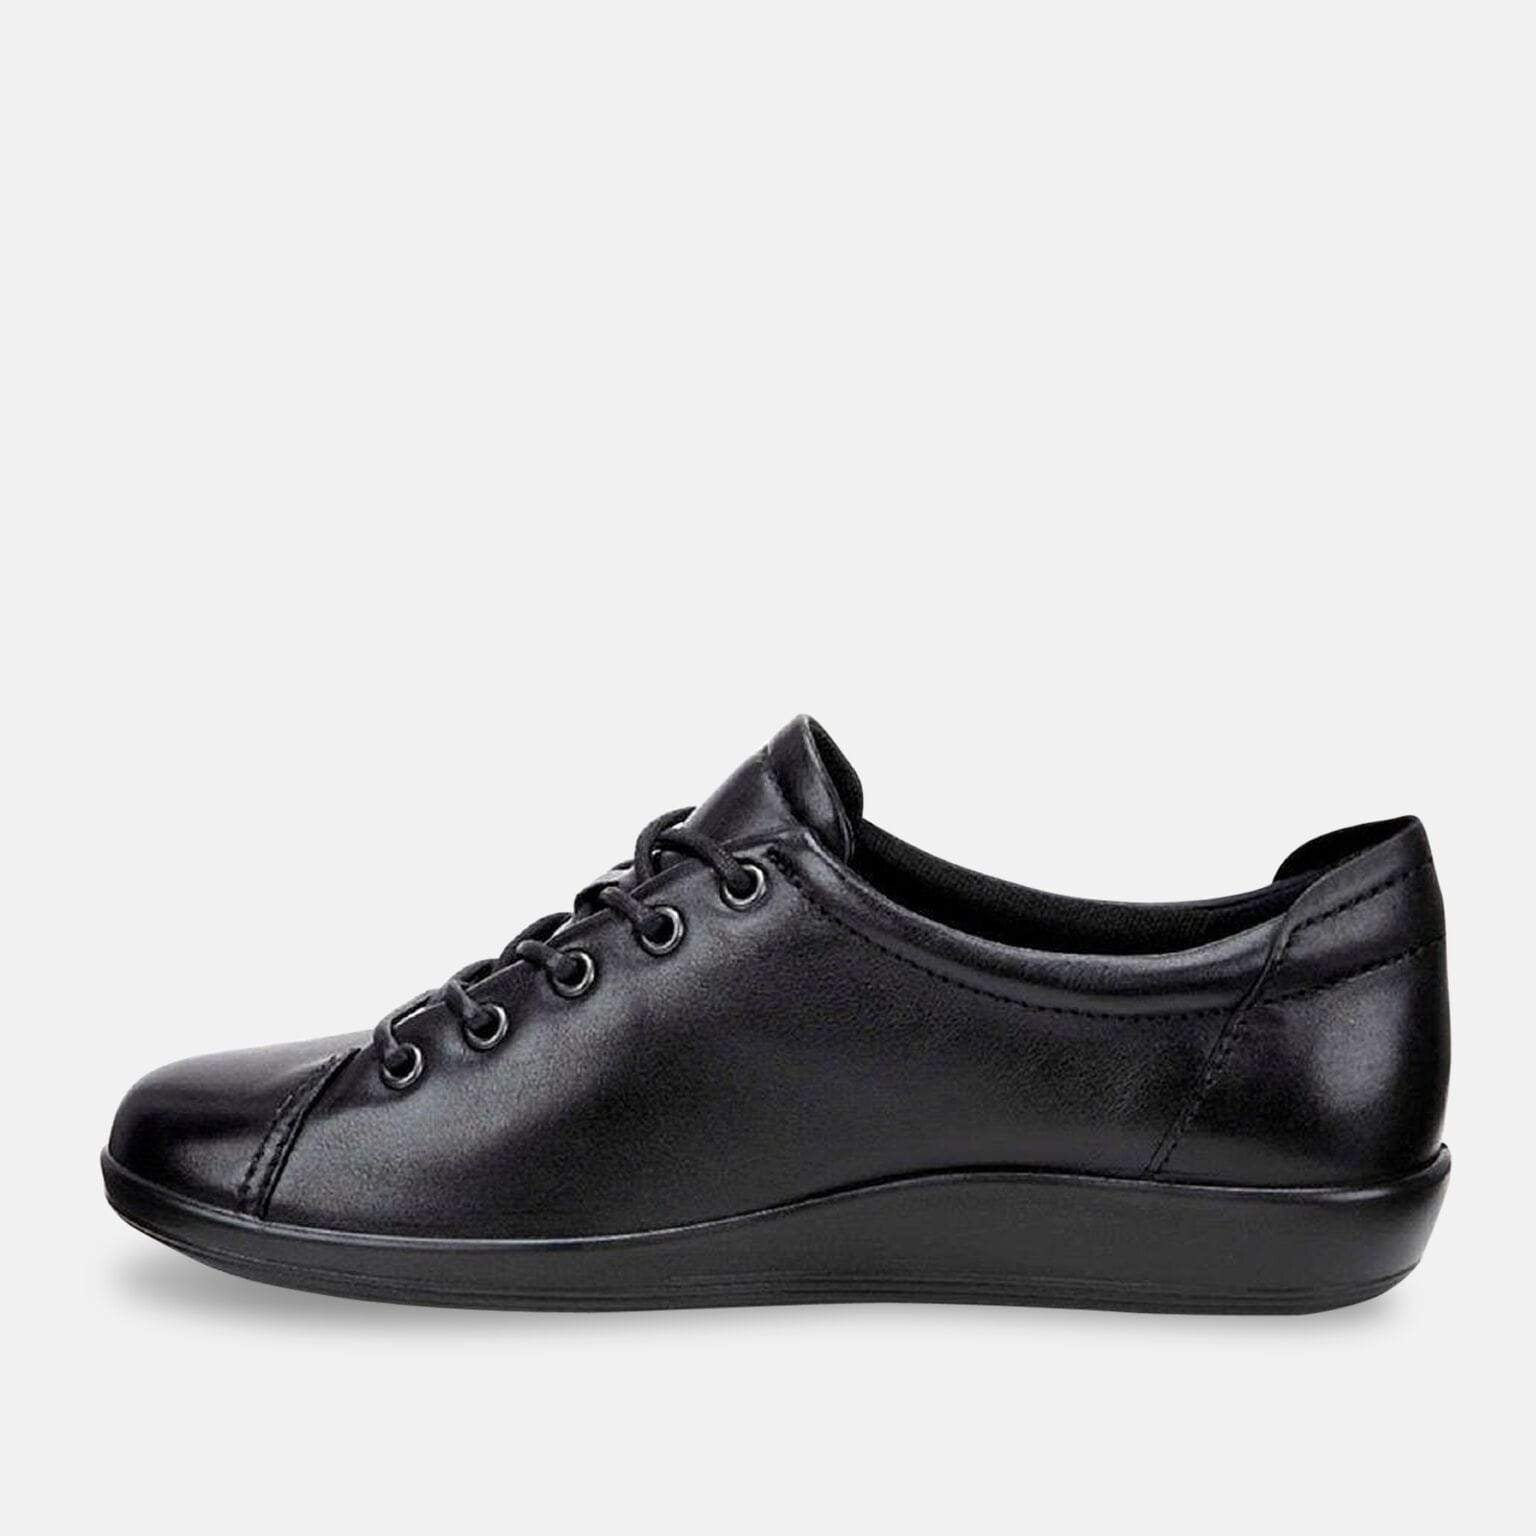 Ecco Footwear Soft 2.0 206503-56723 Black